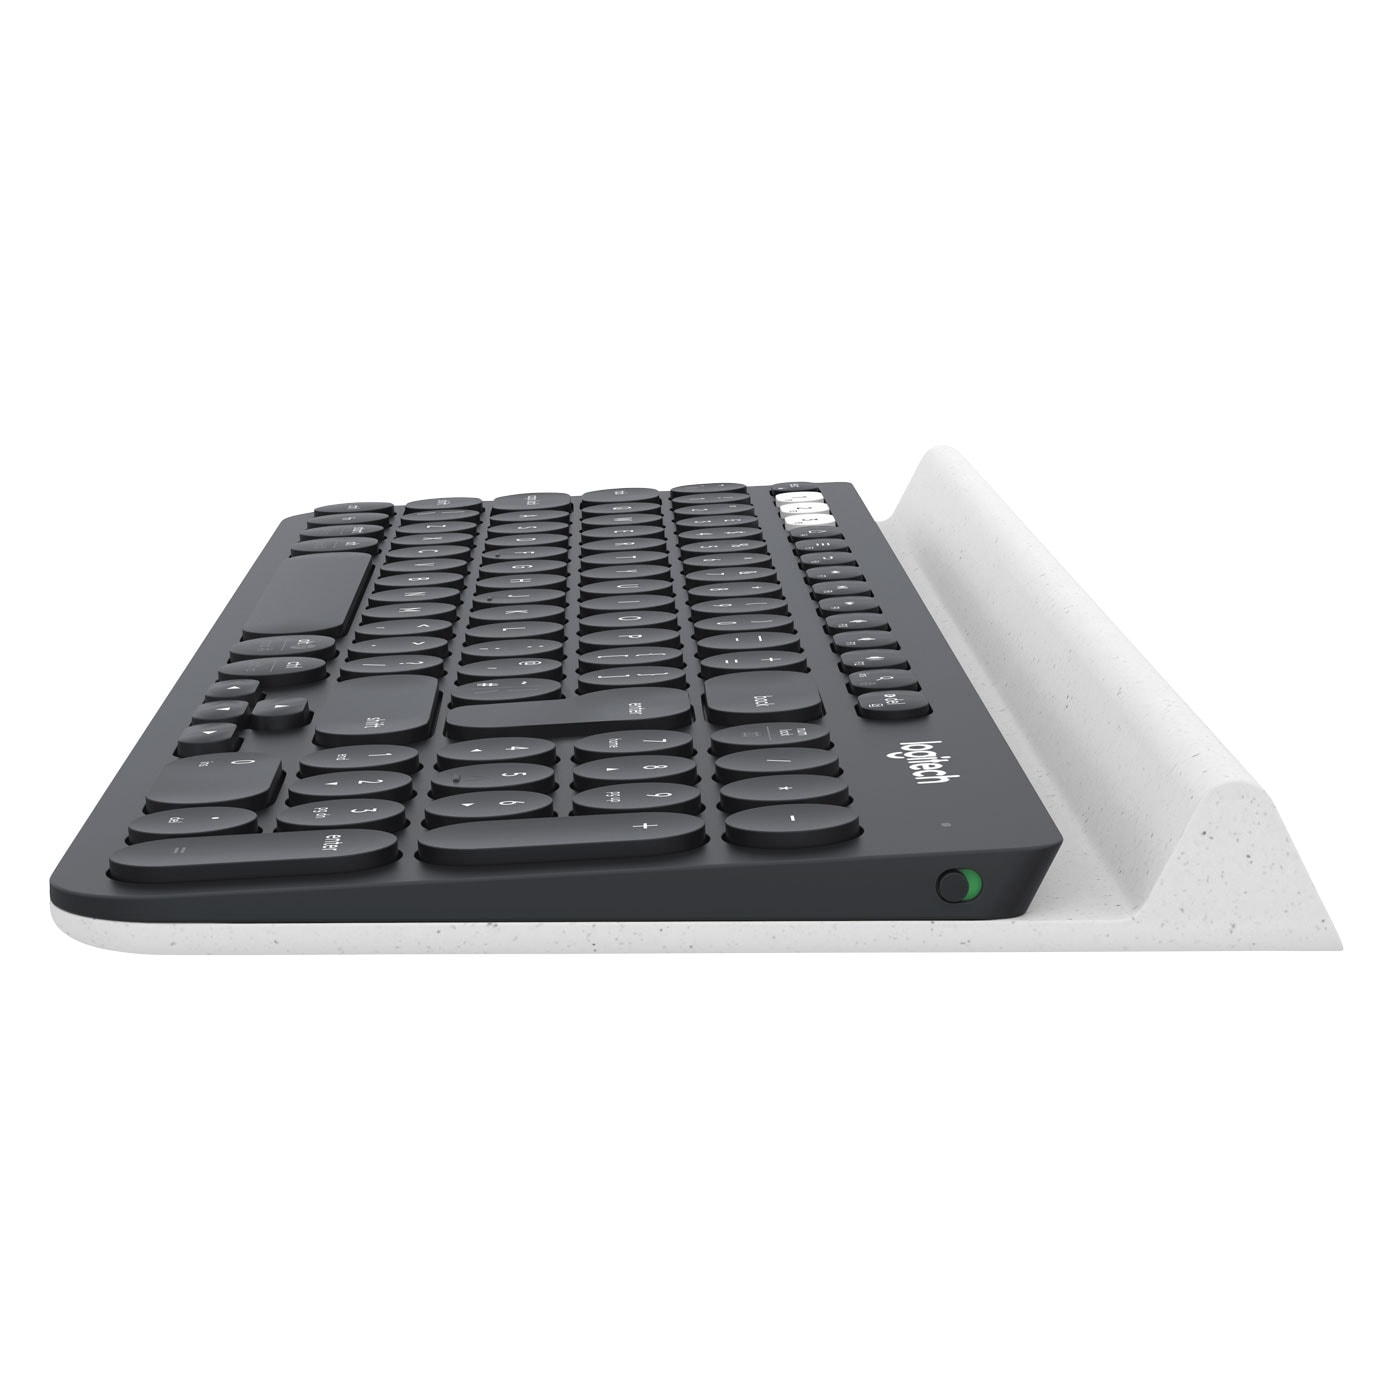 Logitech K780 Multi-Device Wireless Keyboard - Clavier PC - 1